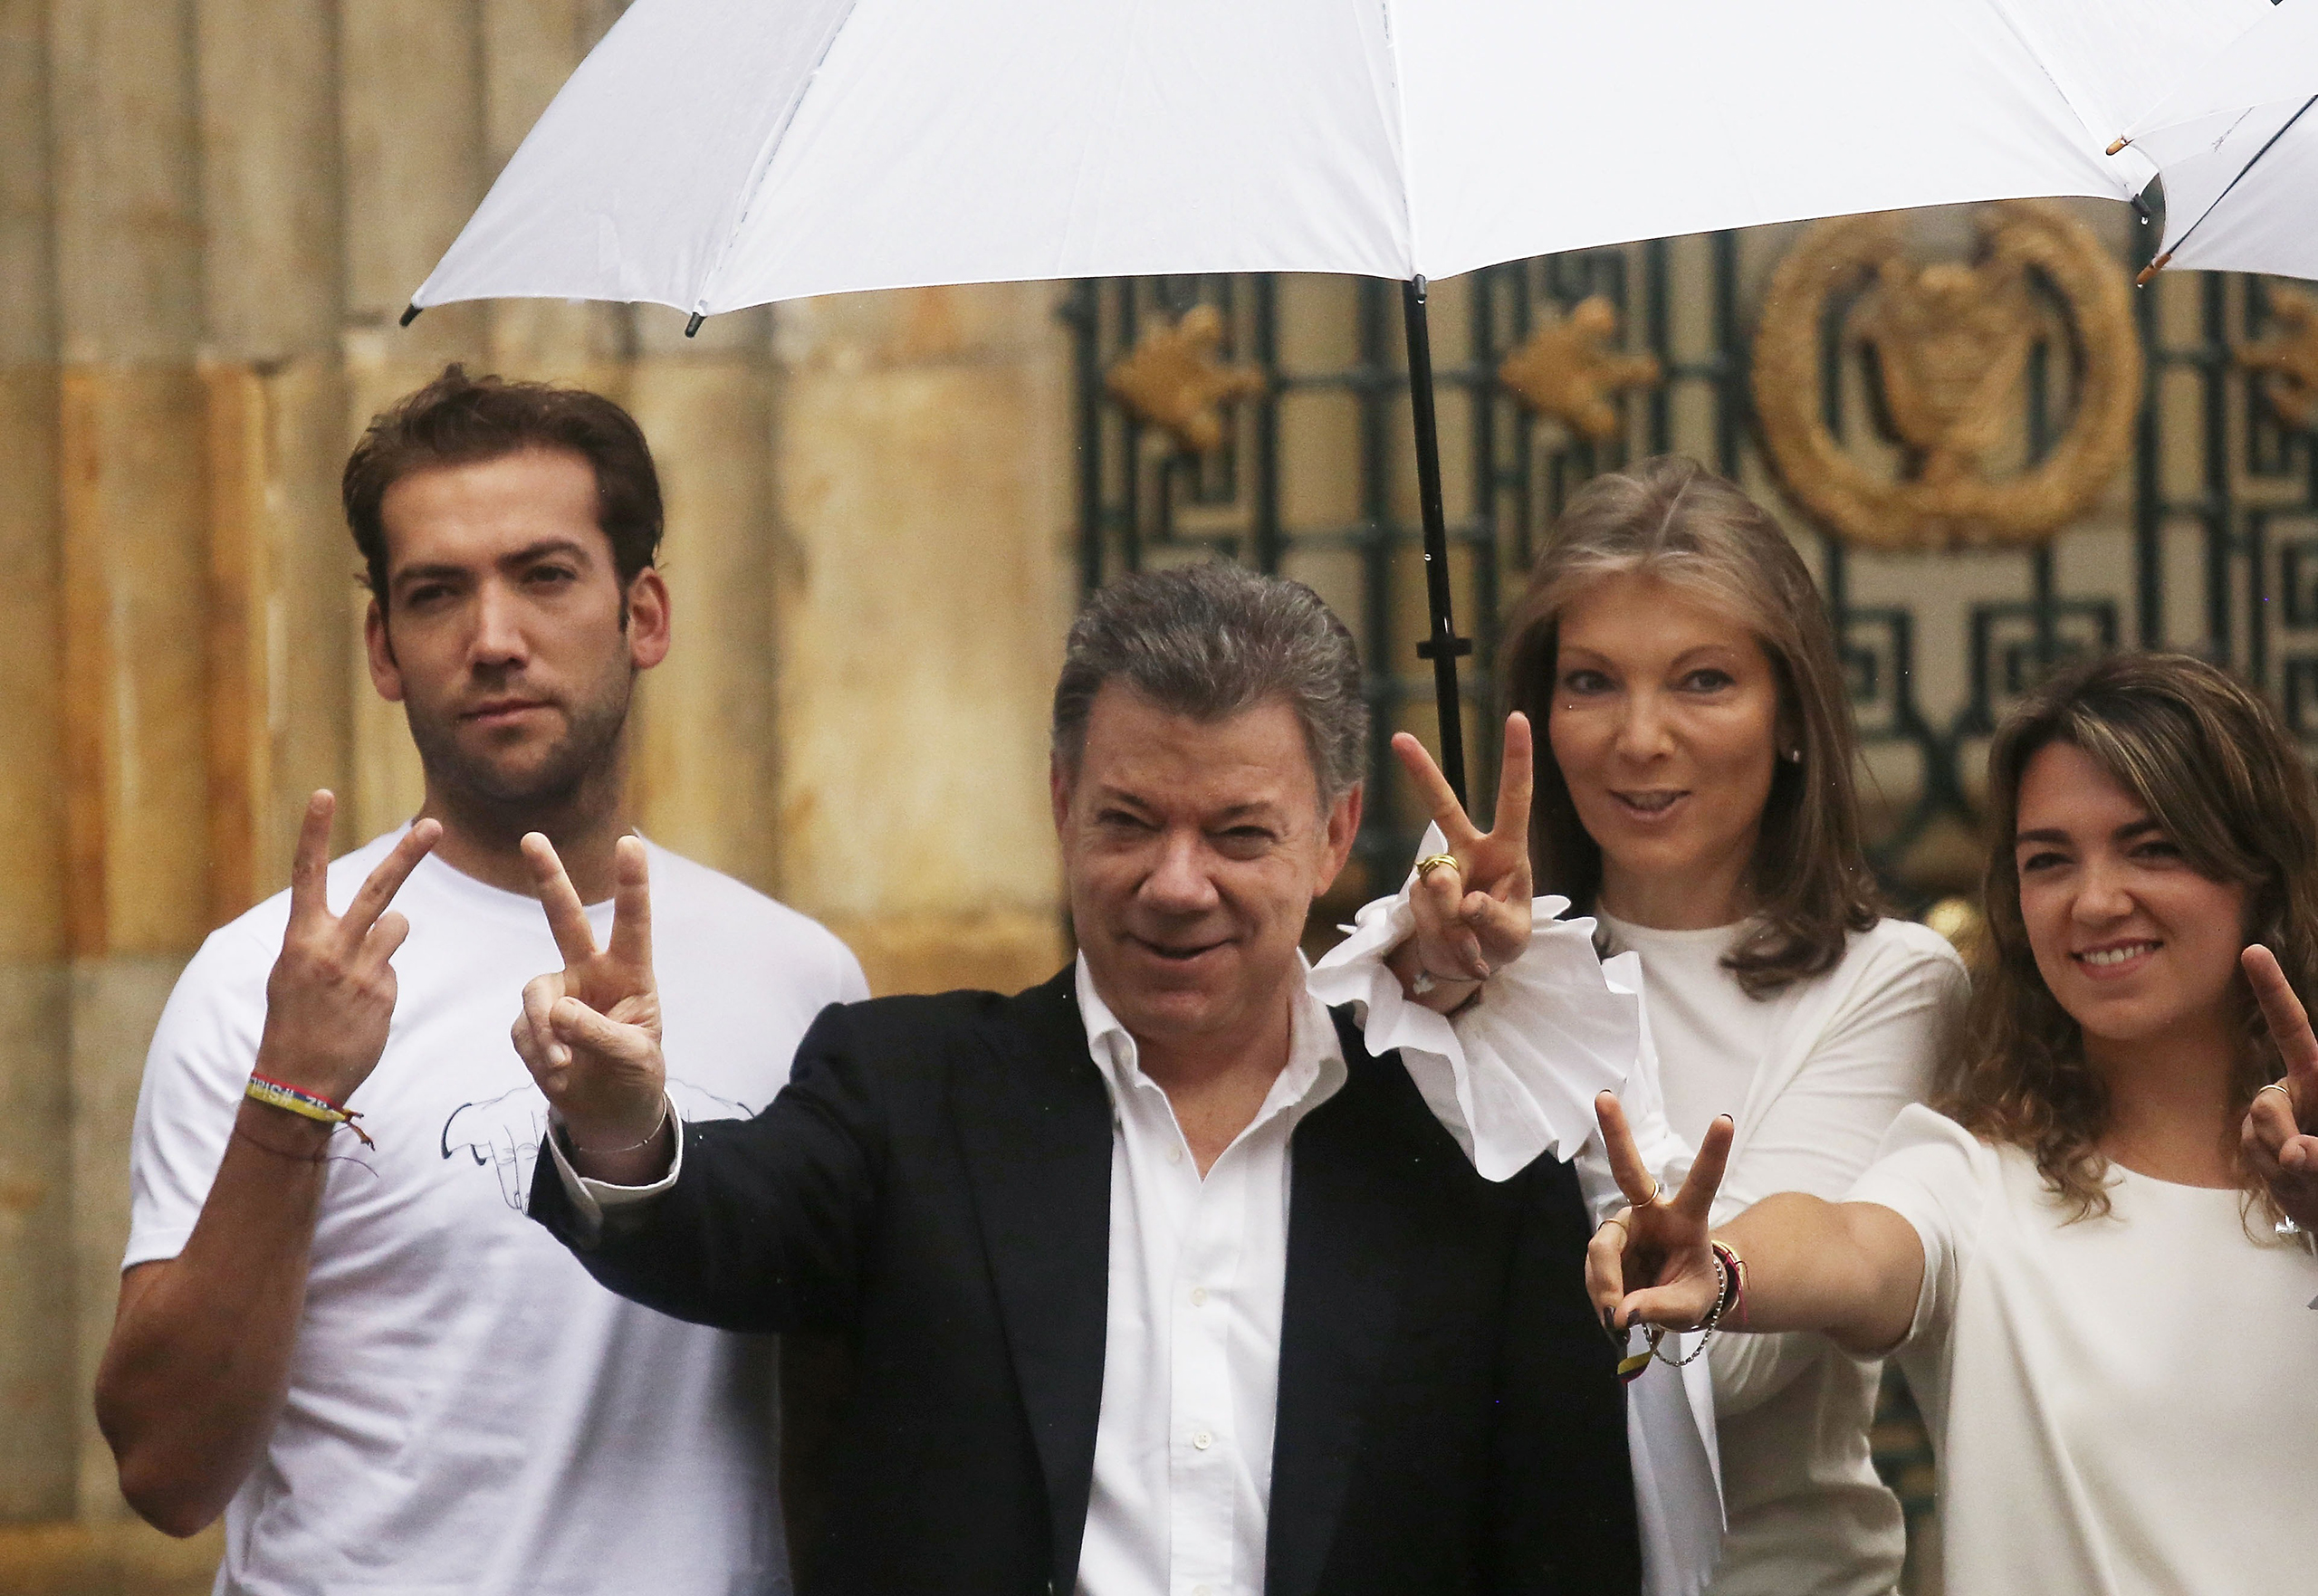 Santos with his wife and children after voting to end hostilities with FARC on Oct.2